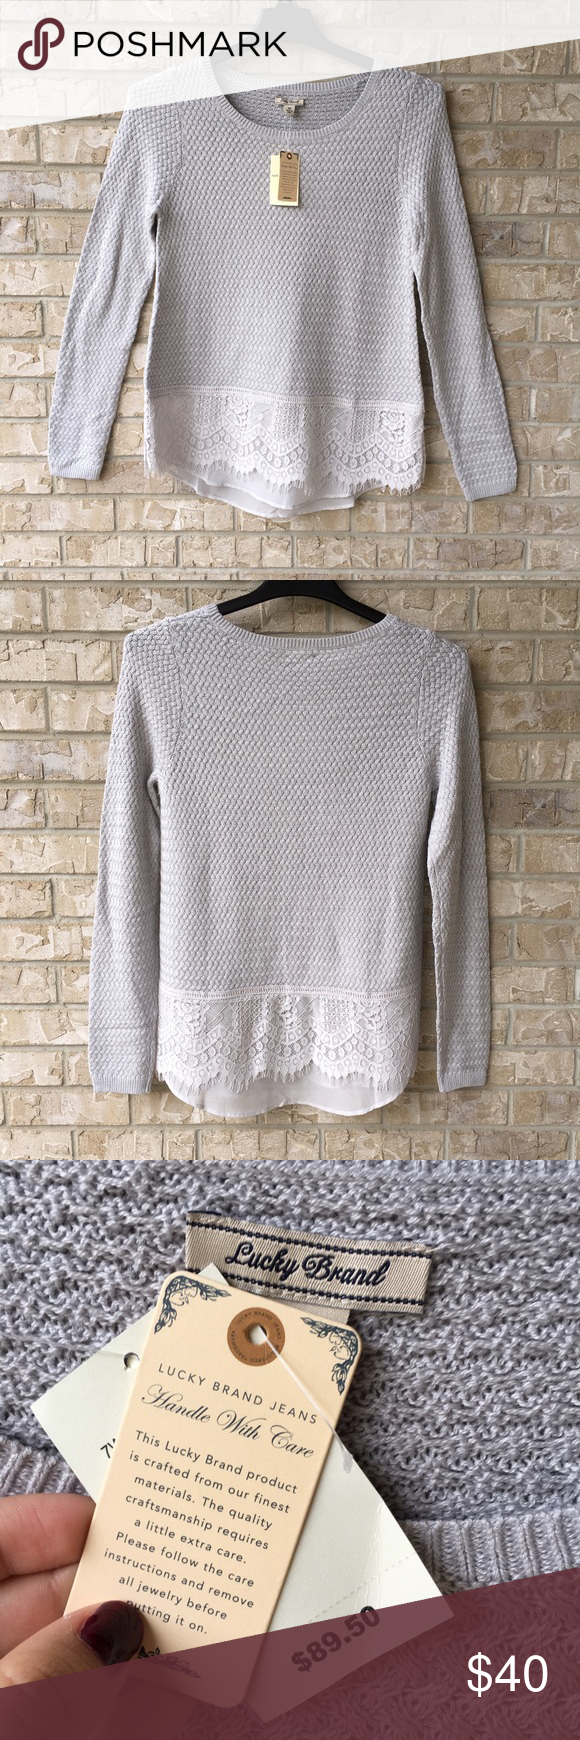 NWT Lucky Brand Gray Lace Contrast Sweater Top M Brand new with tags. Perfect to wear with boots and jeans! Price is firm. Happy poshing! :) Lucky Brand Tops Blouses